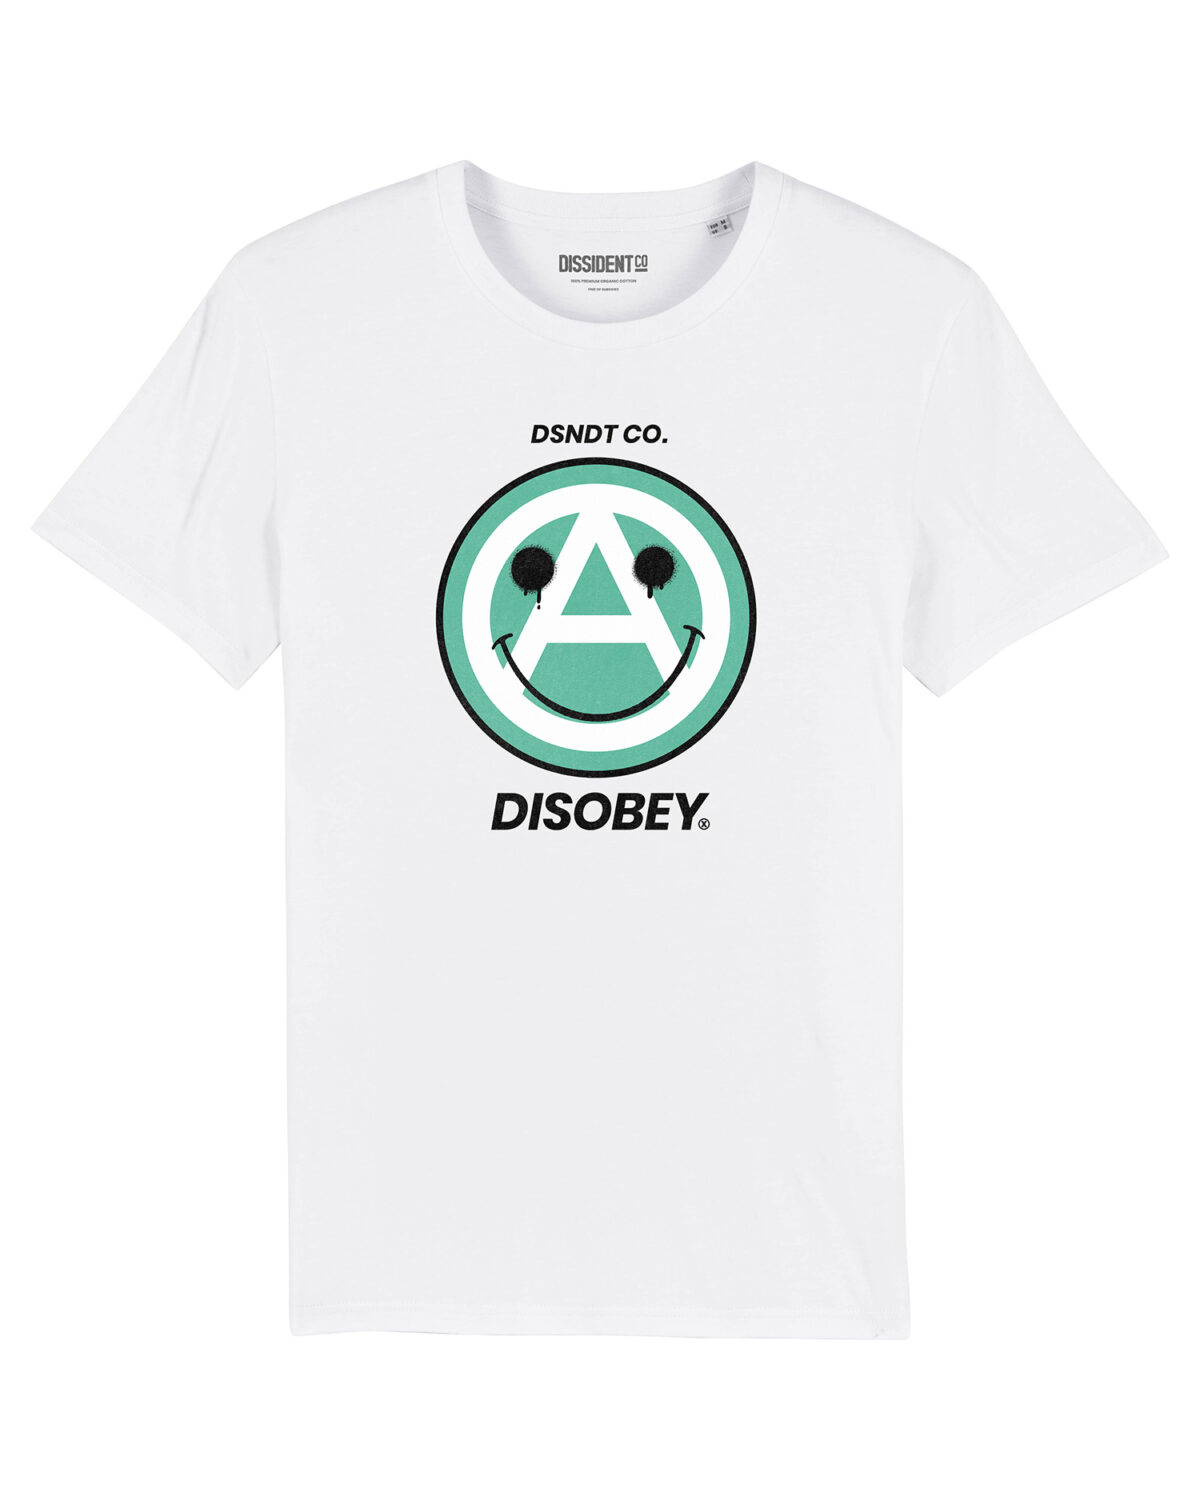 Camiseta Smile it's Anarchism Disobey Dissident Co